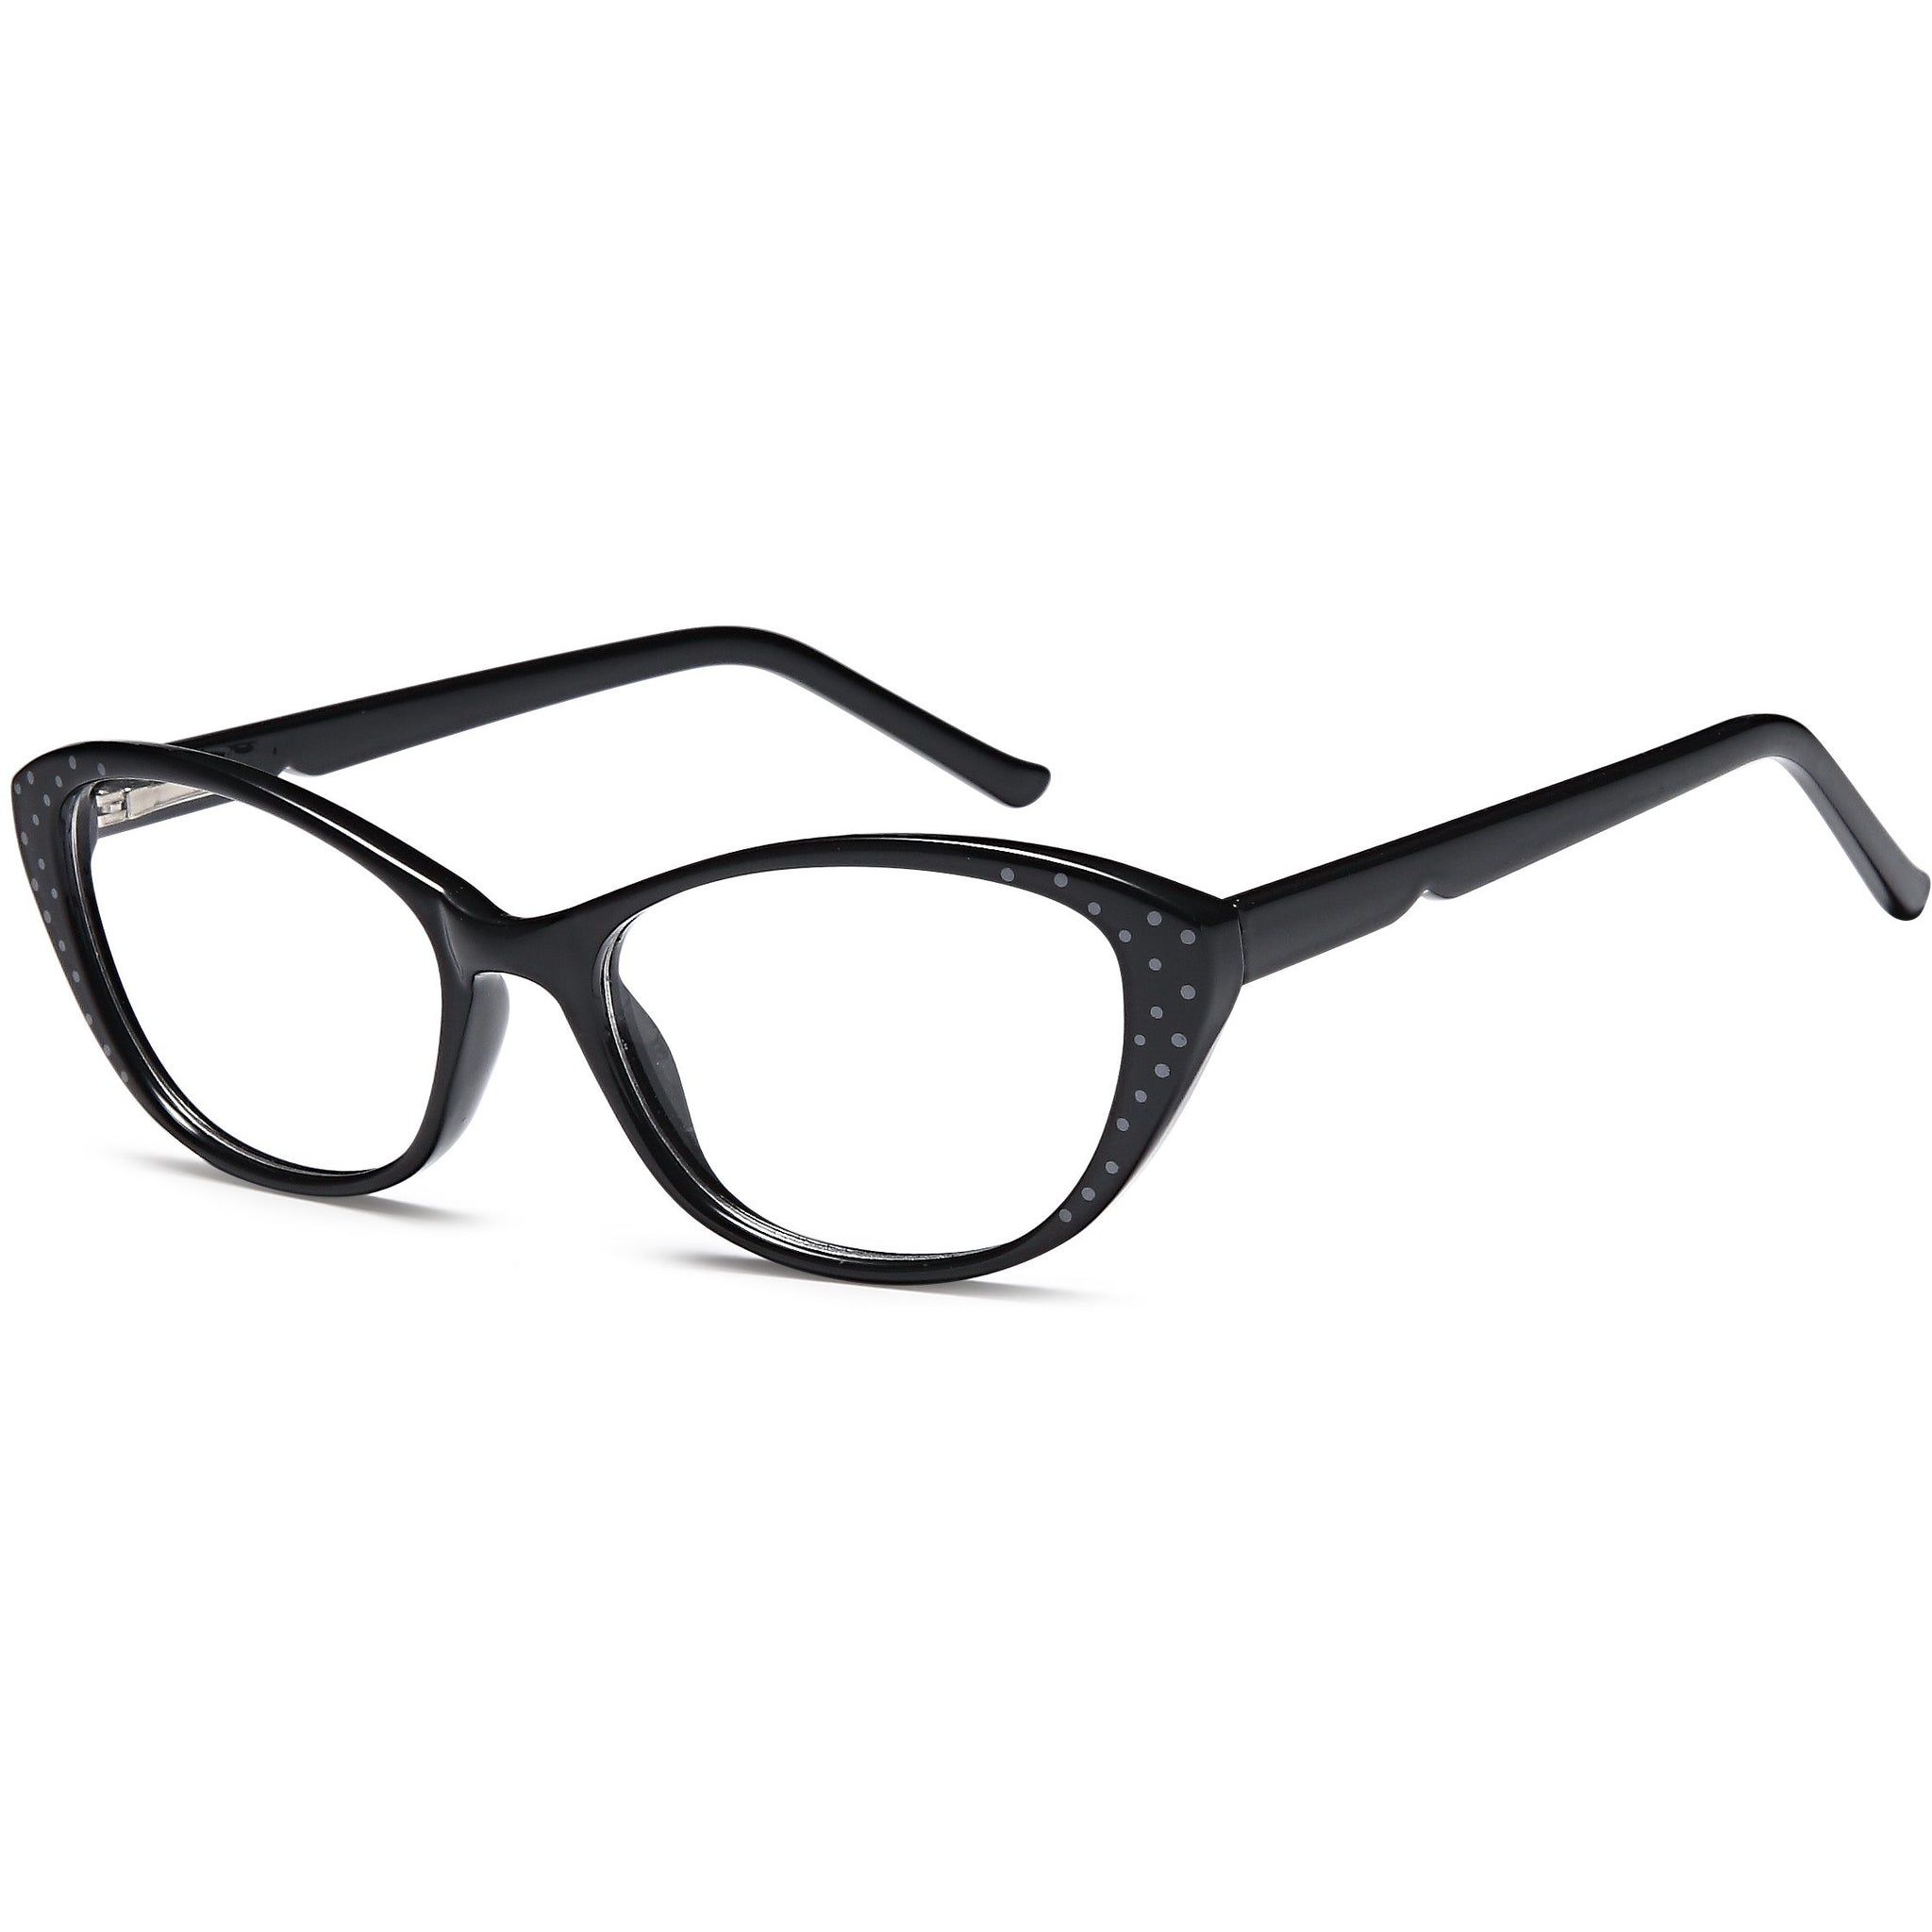 2U Prescription Glasses US 99 Optical Eyeglasses Frame